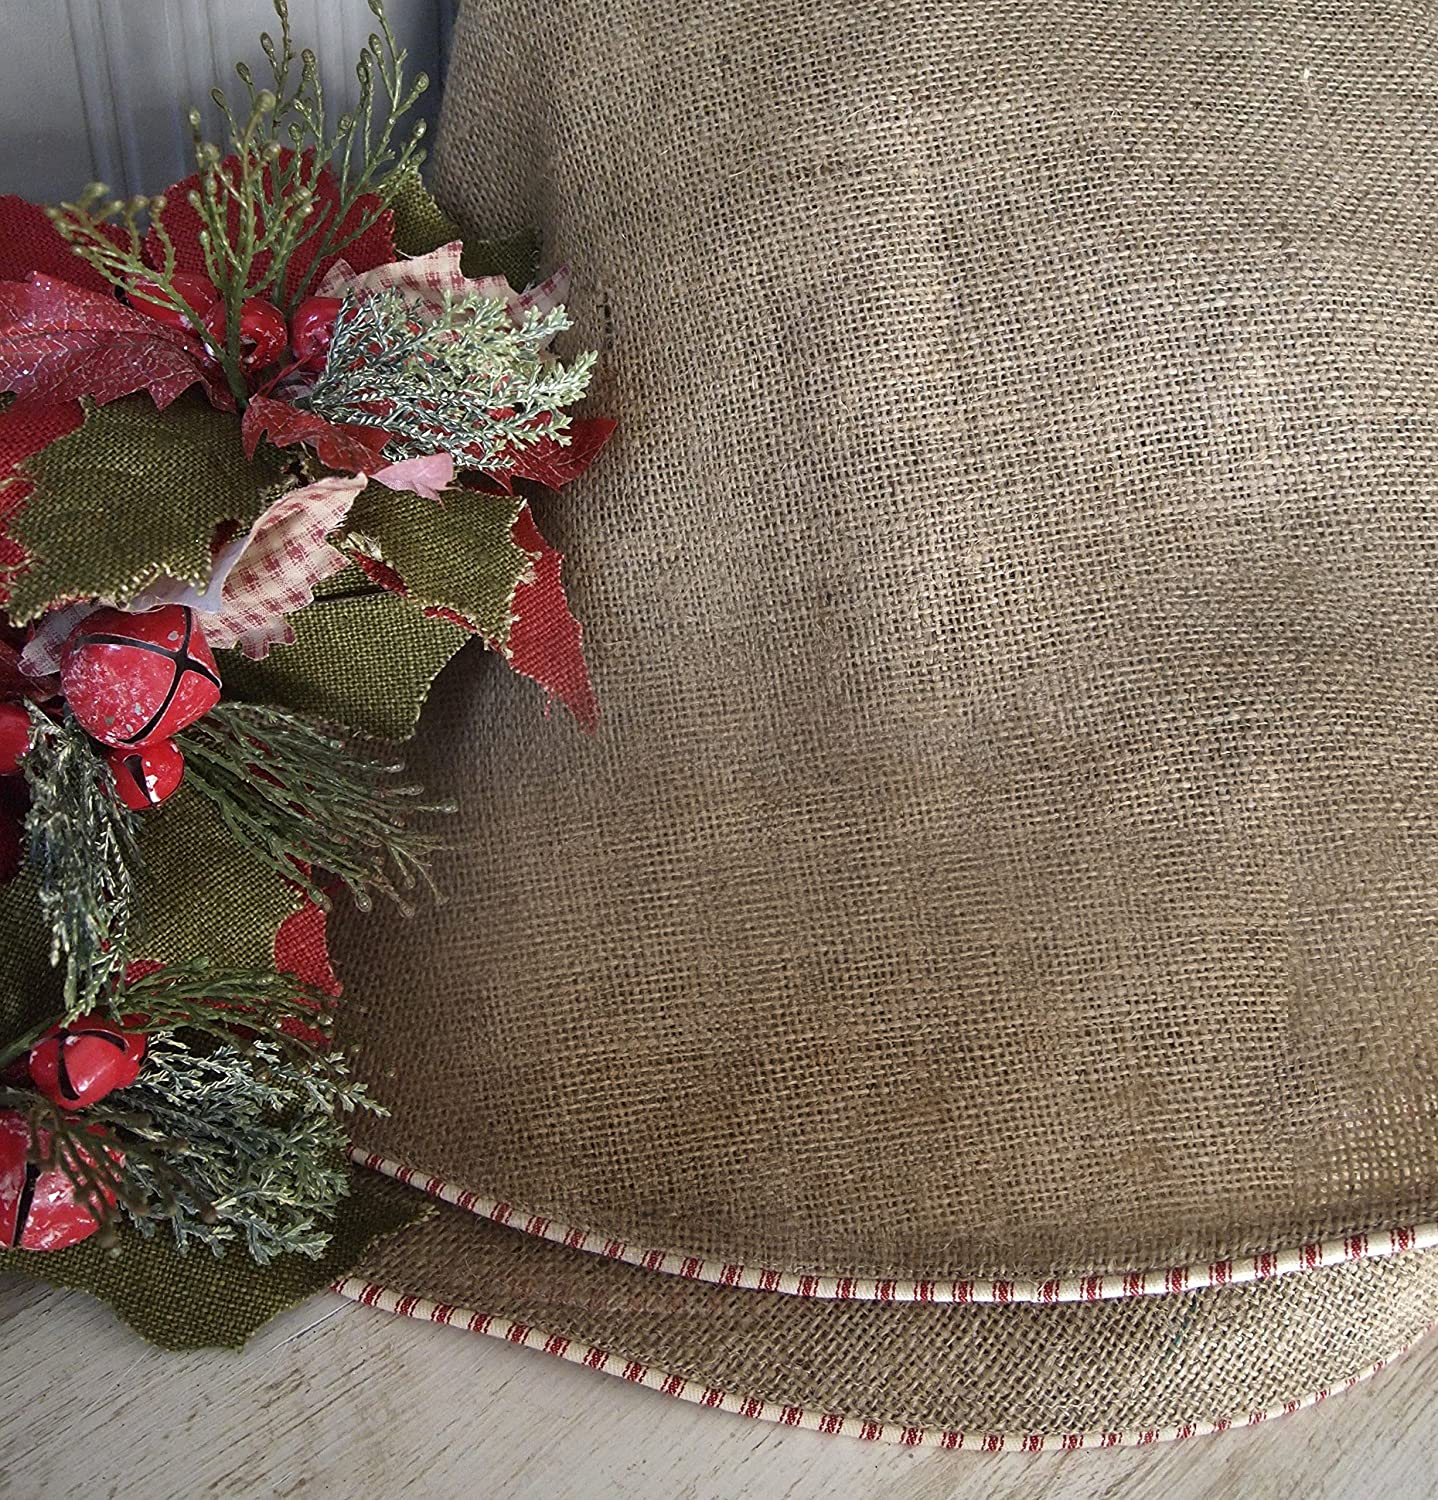 amazoncom burlap christmas tree skirt with red and white french ticking large rustic christmas tree skirt approx 60 handmade - Rustic Christmas Tree Skirt